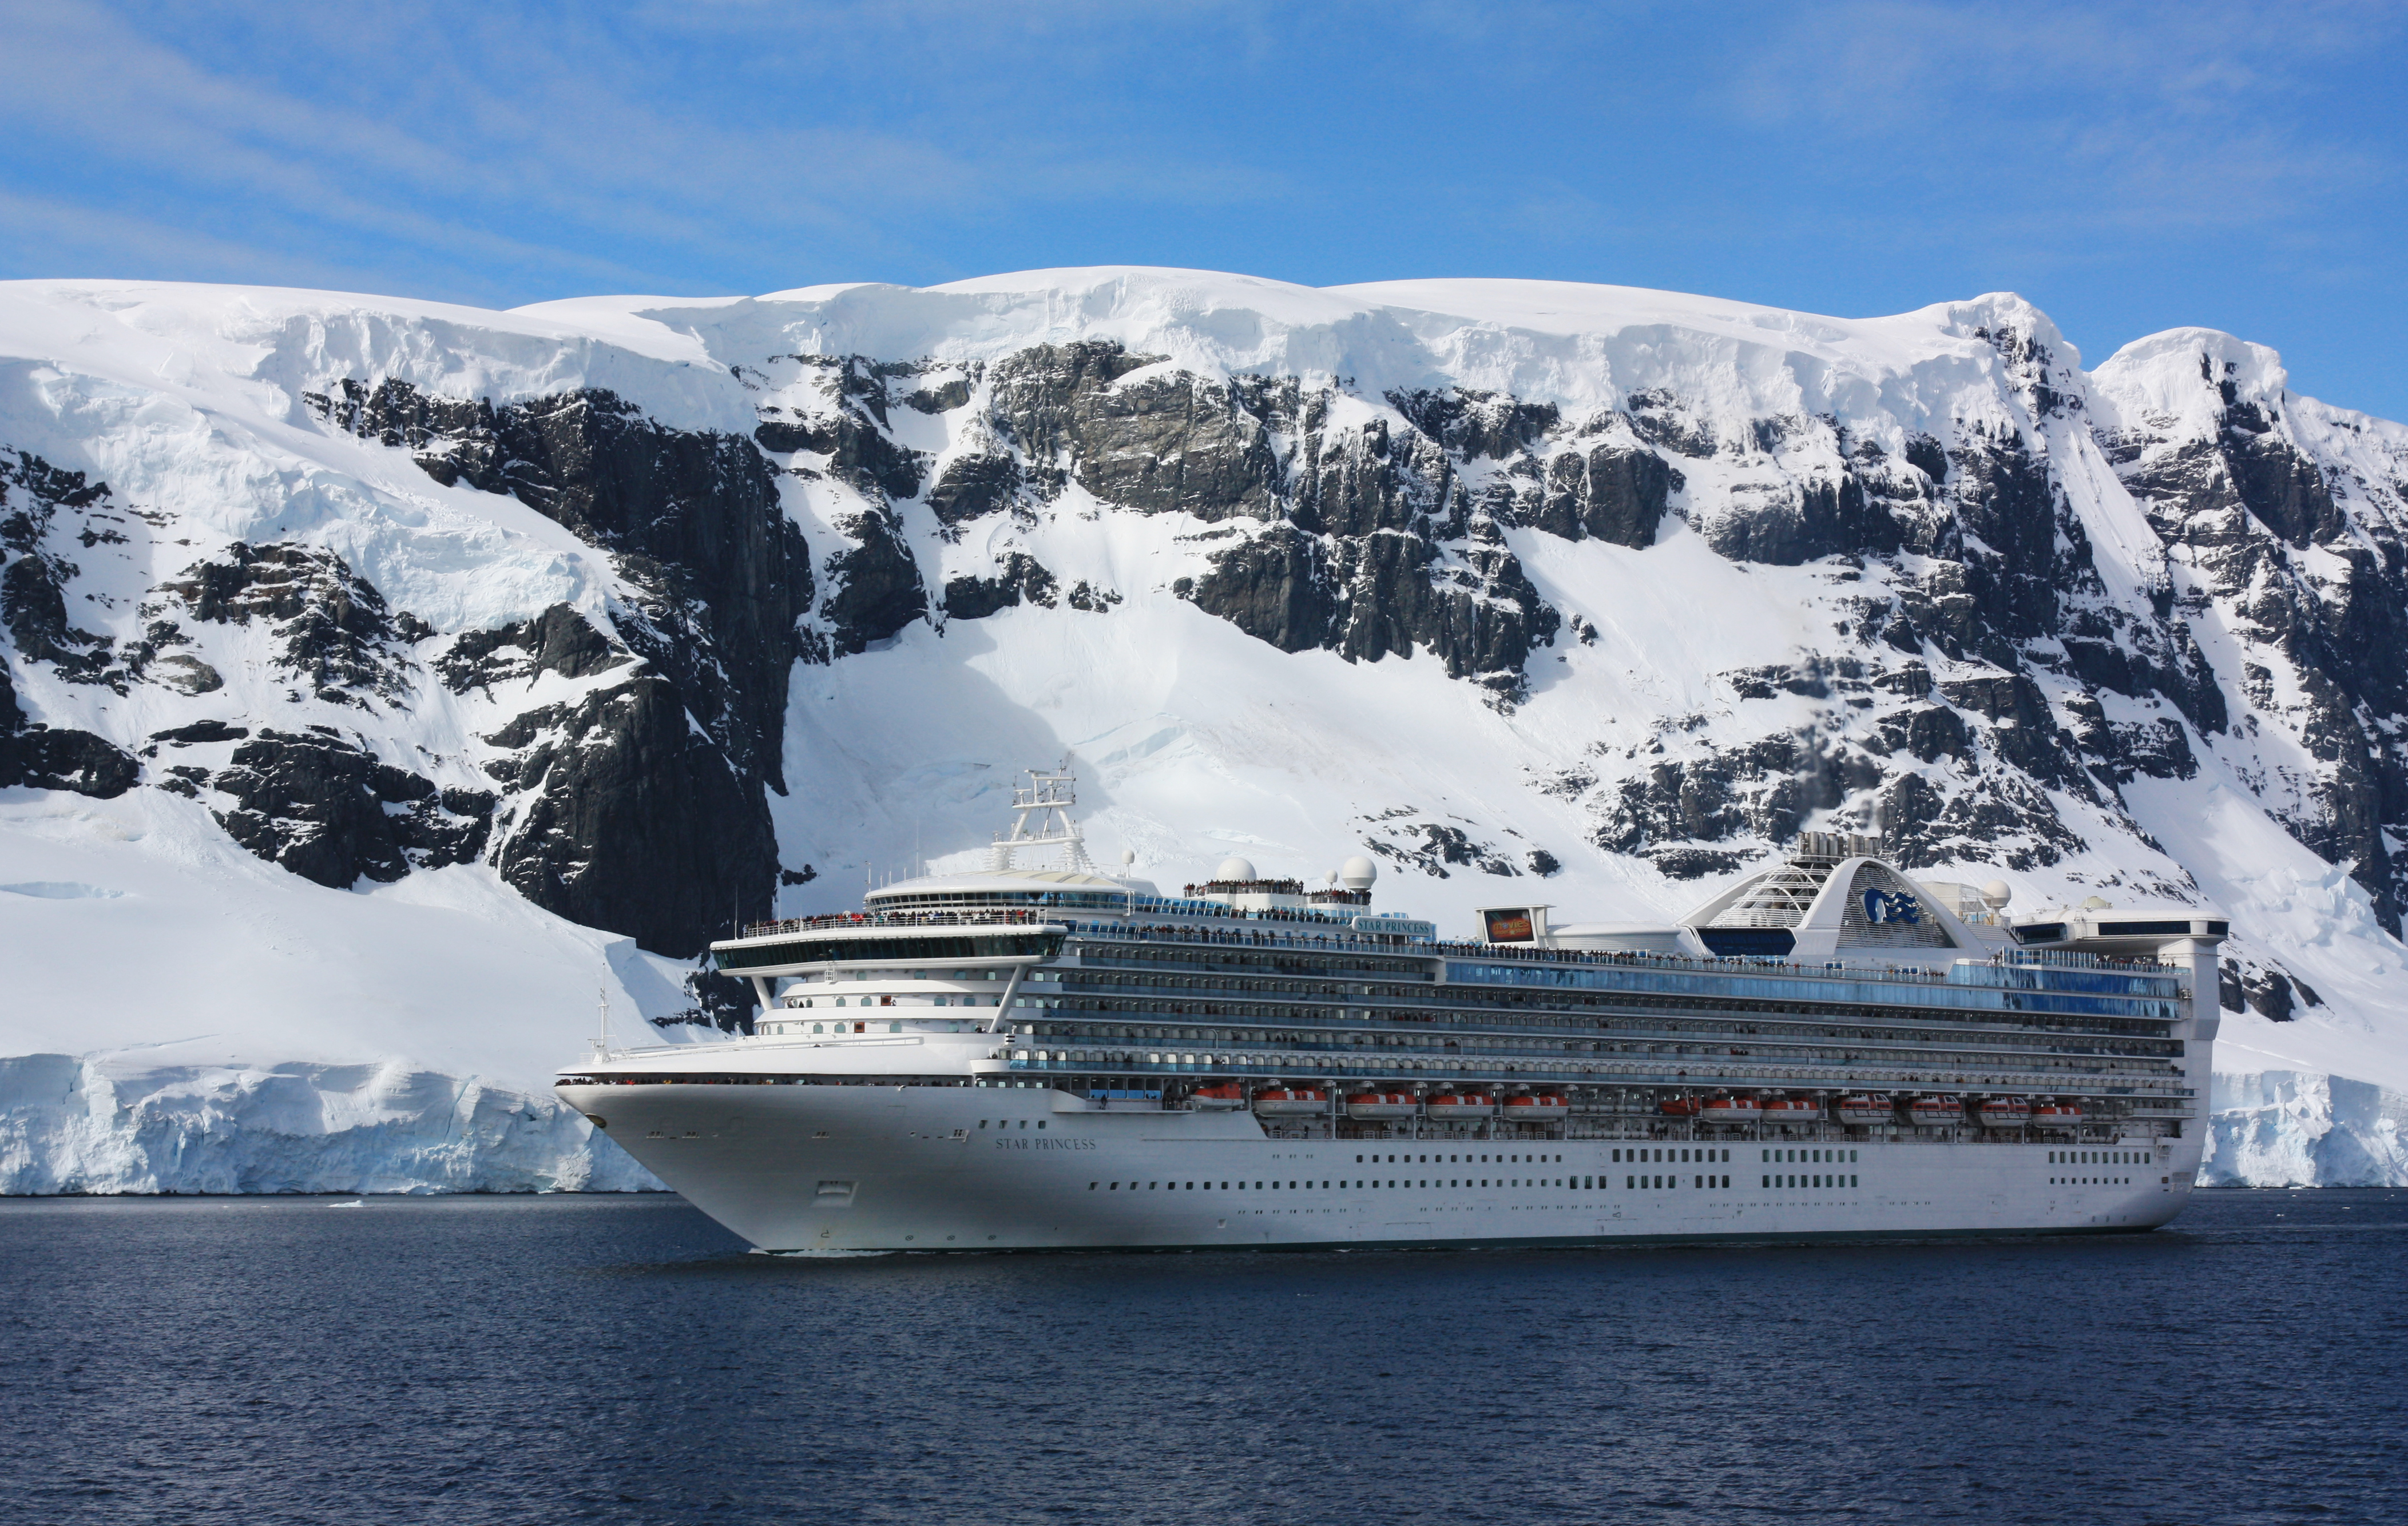 A cruise ship in the Antarctic